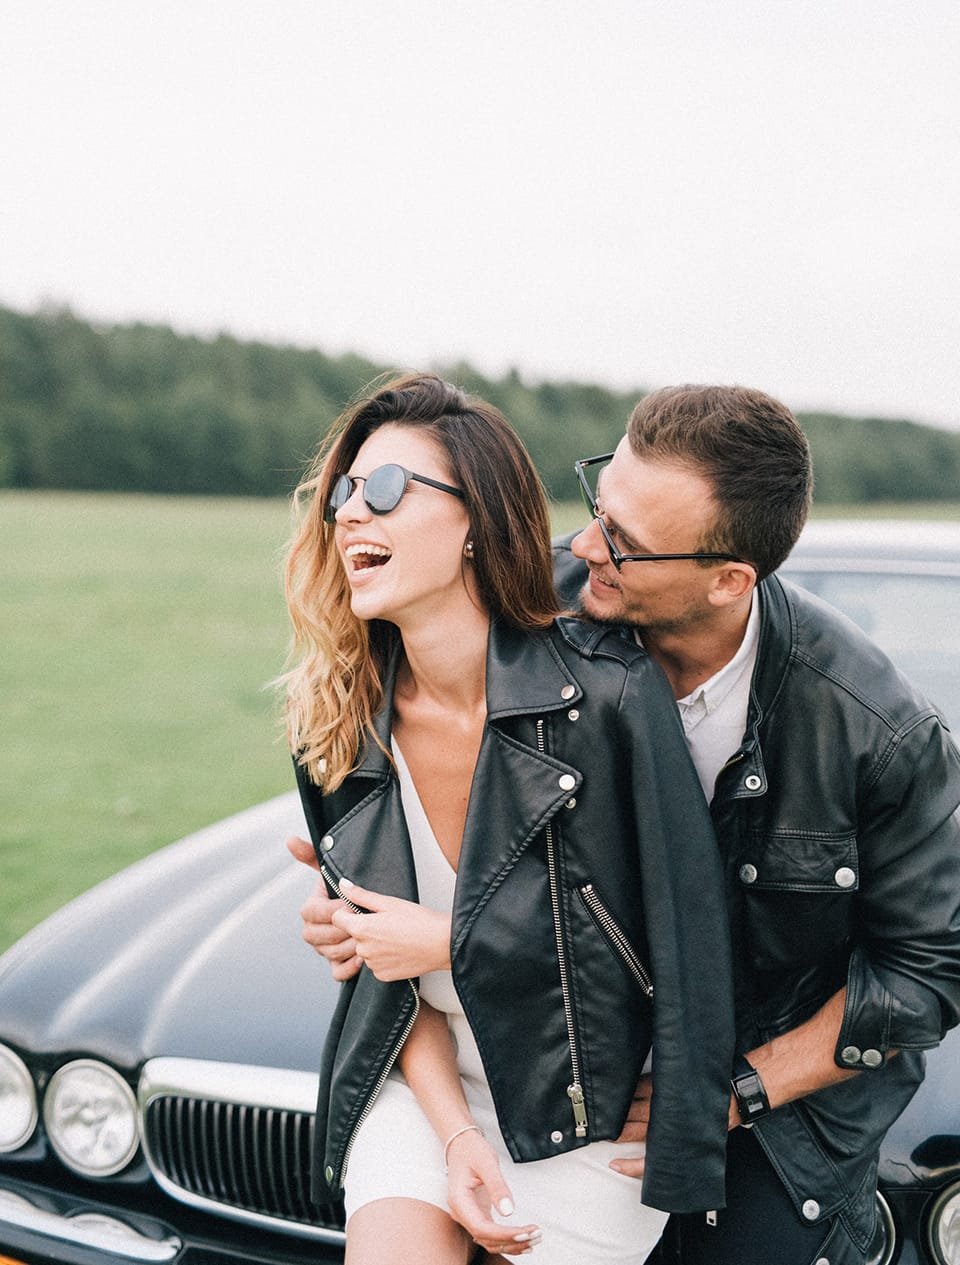 woman and man wearing leather jackets